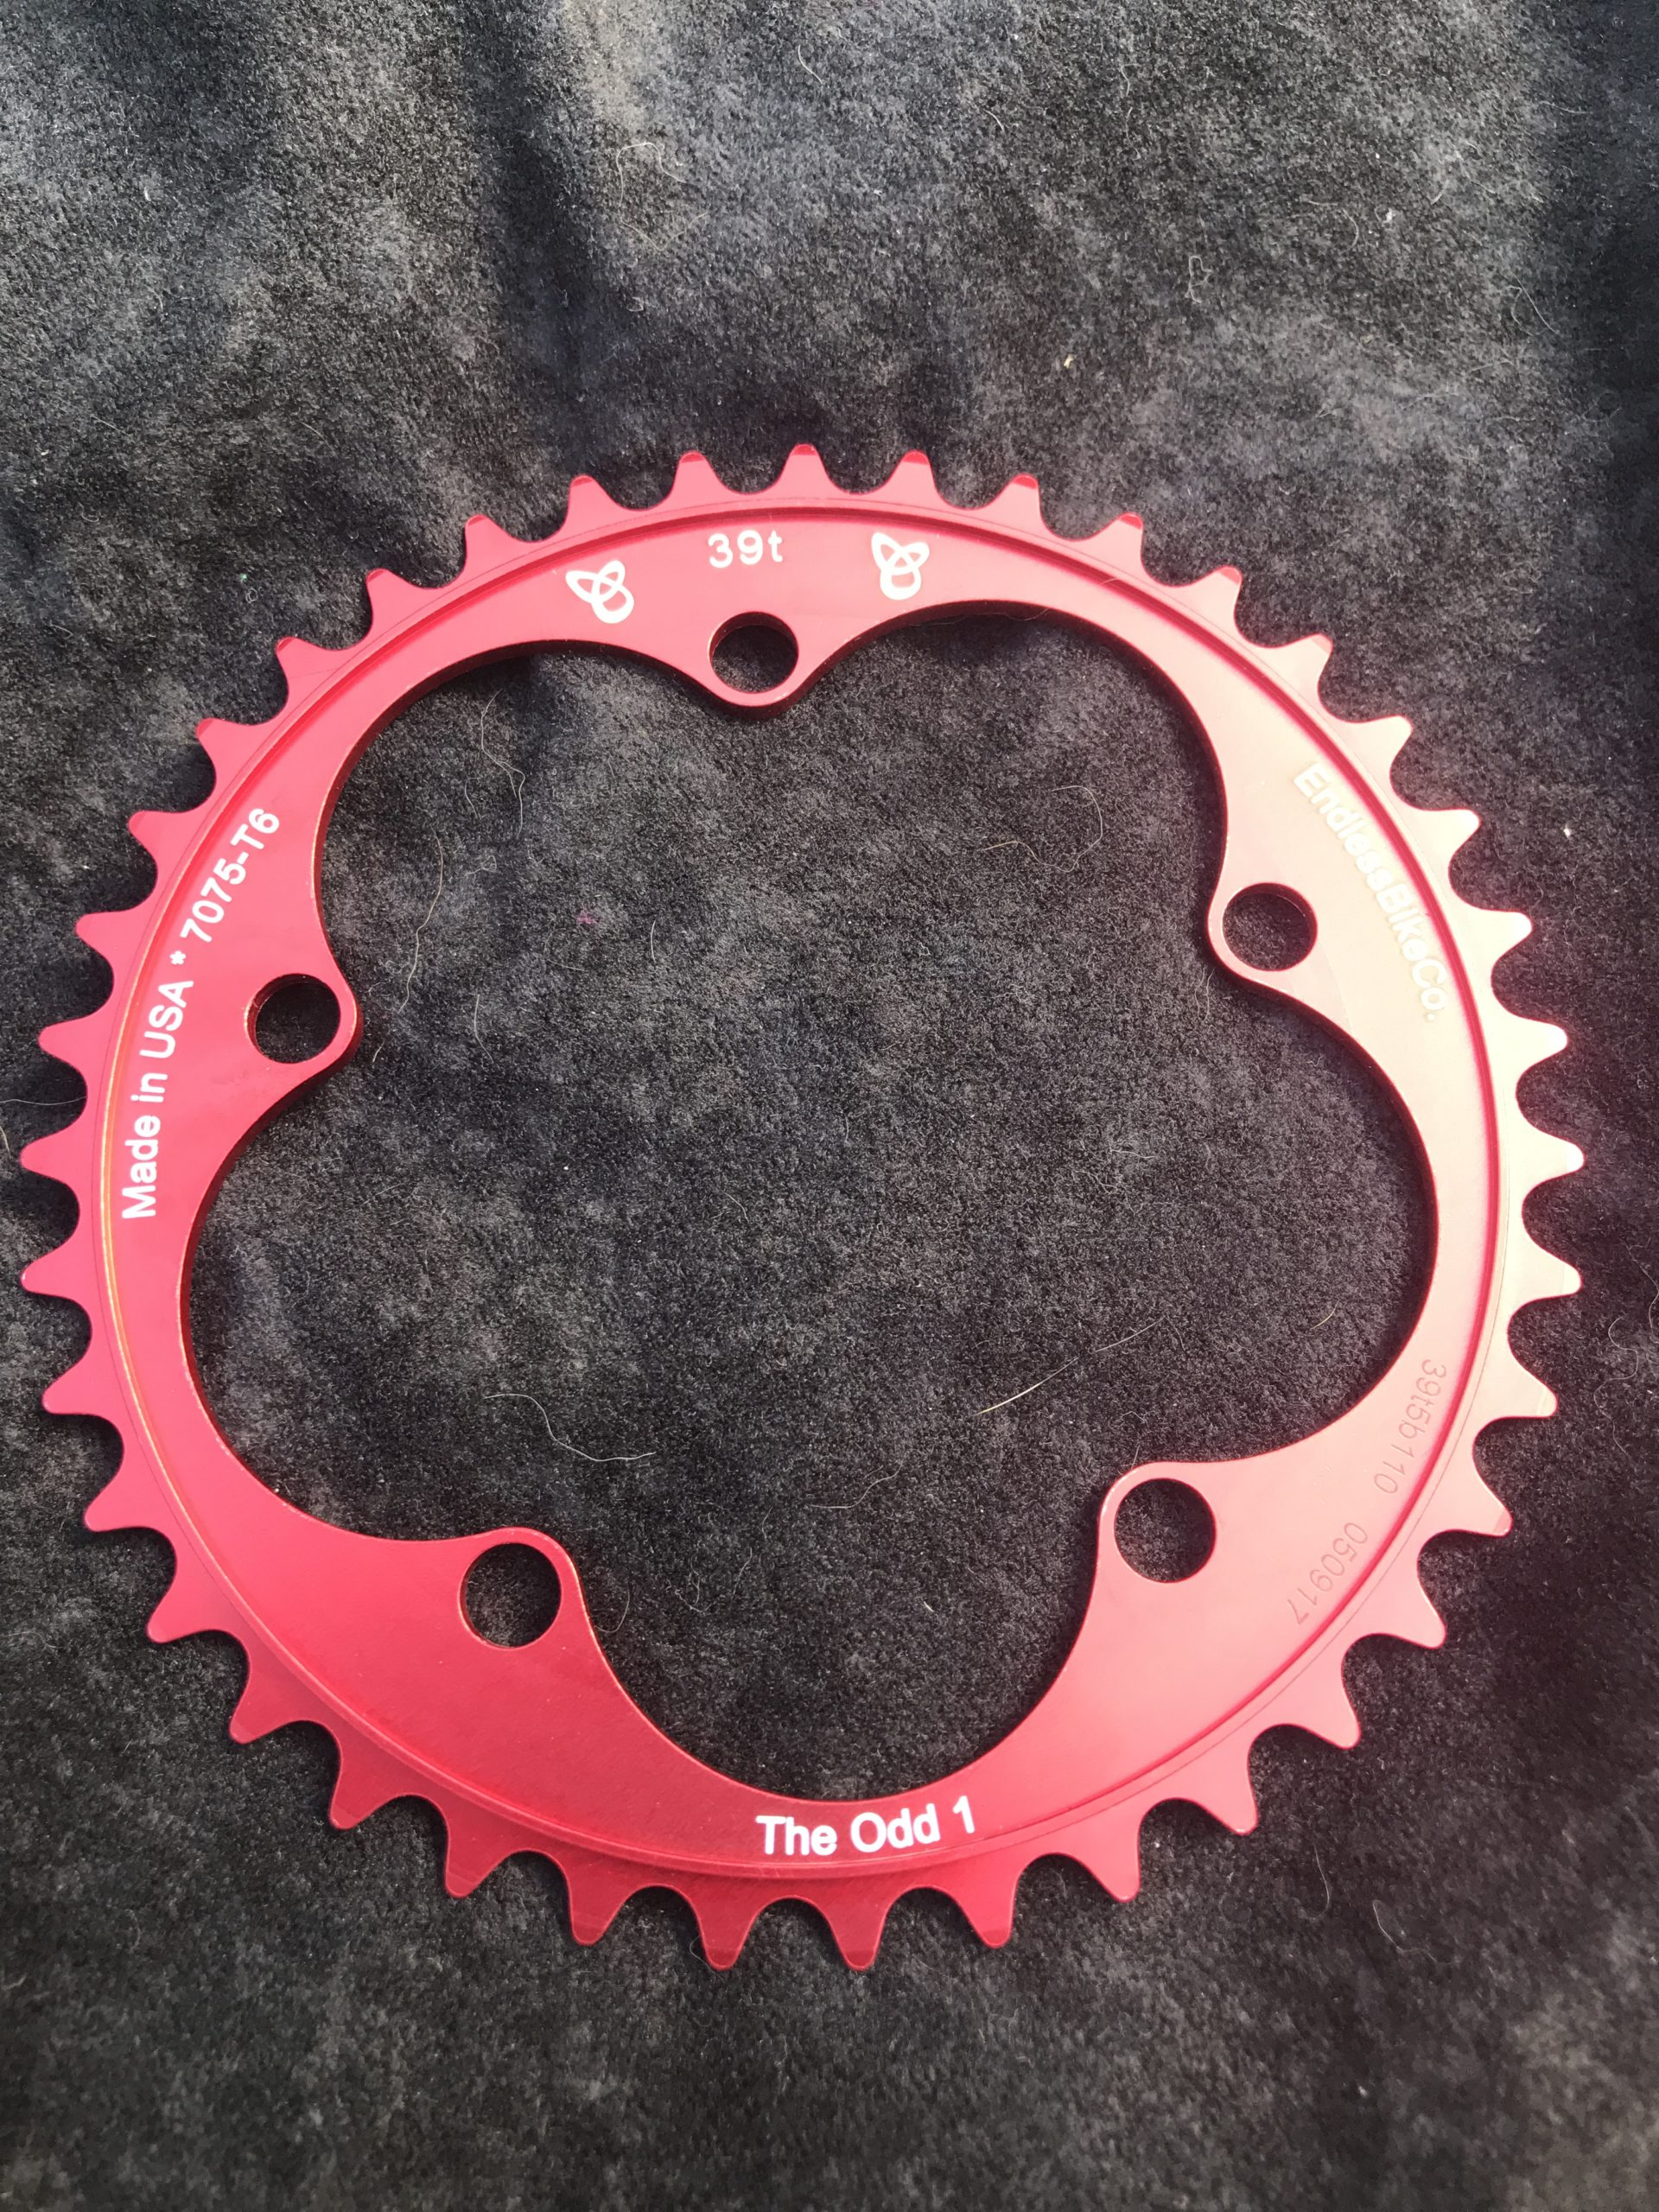 Narrow wide chain ring 39 tooth red